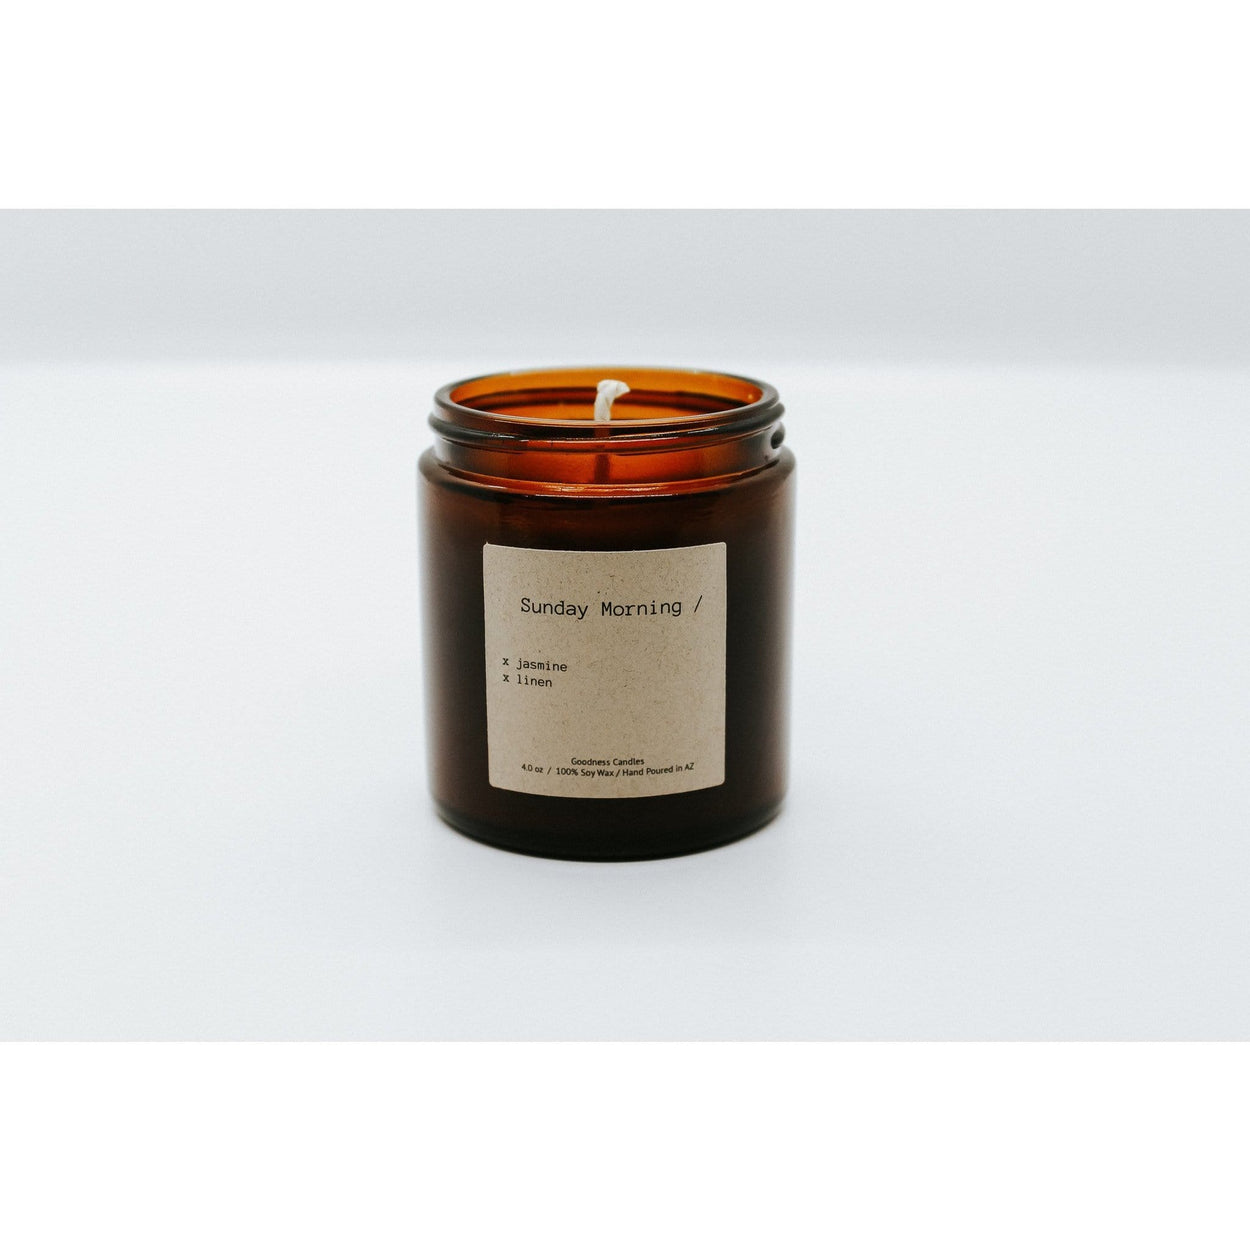 Notes of soft linen and jasmine mini Sunday Morning Goodness Candles goodnesscandles.com